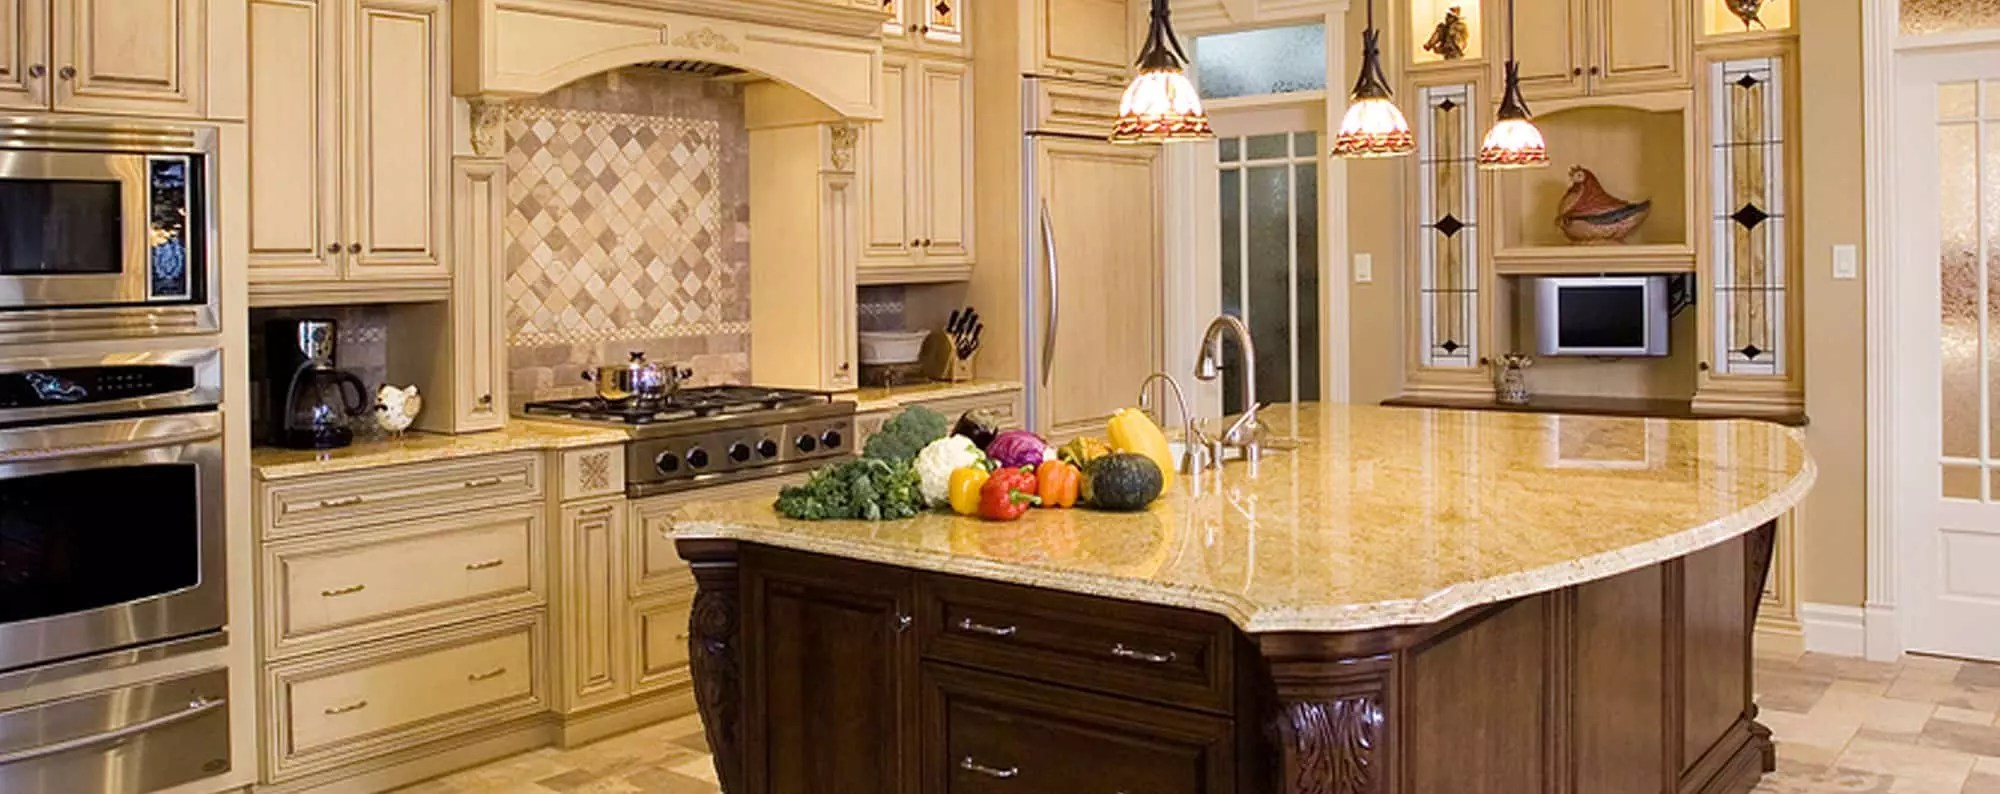 trademarkconstruct kitchen remodeling baltimore Baltimore s Number One Choice for Home Remodeling